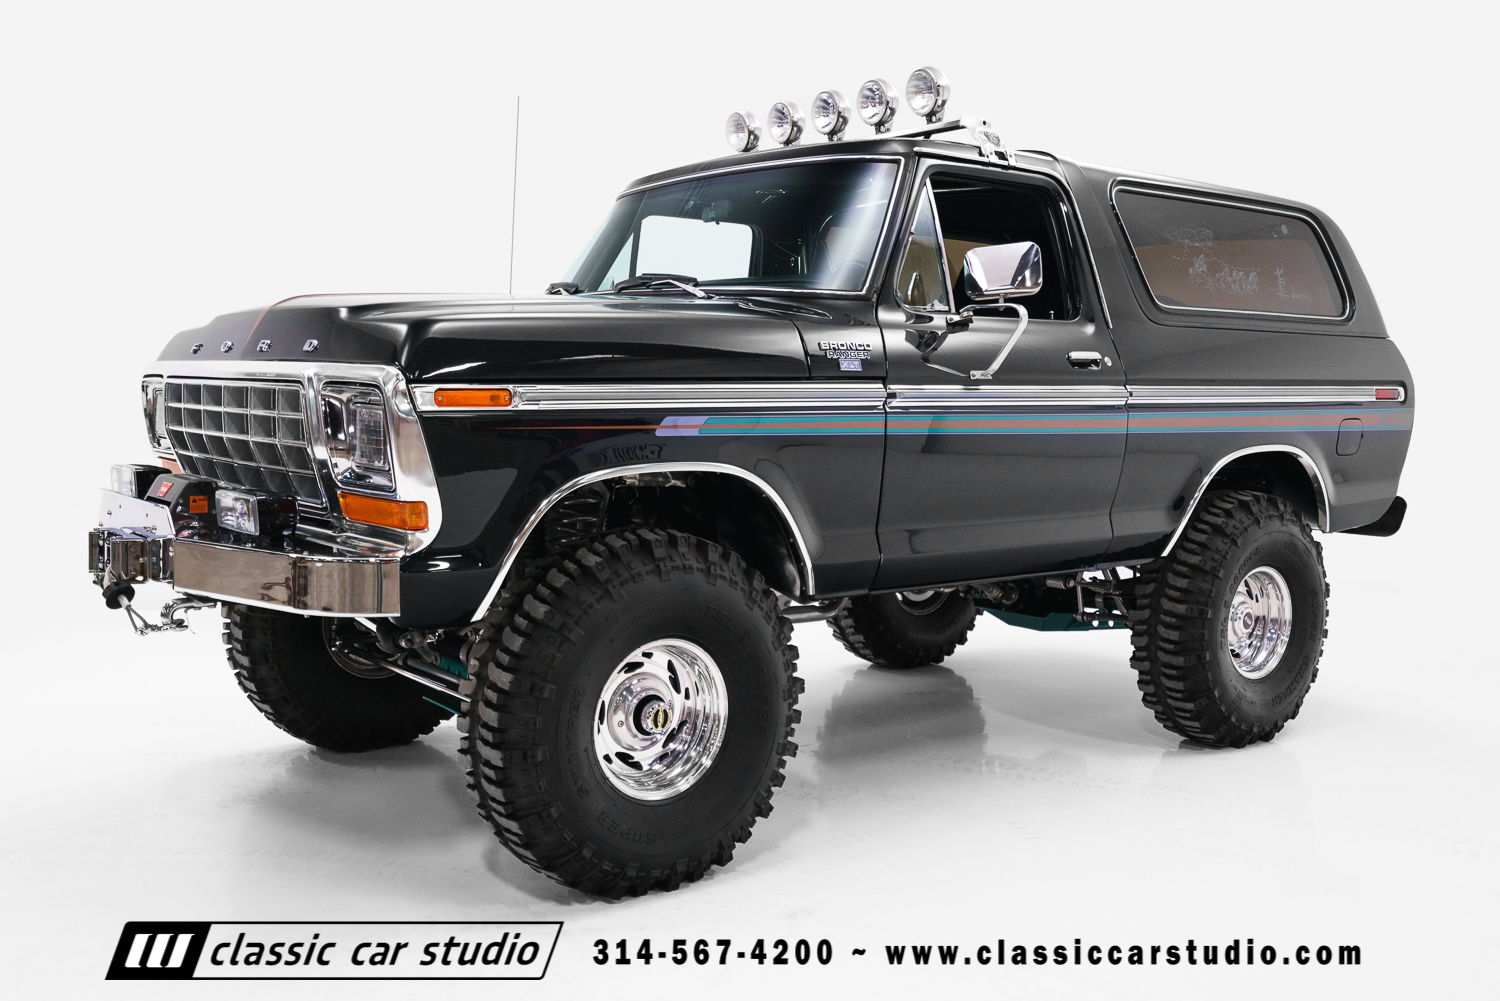 1978 ford bronco classic car studio. Black Bedroom Furniture Sets. Home Design Ideas